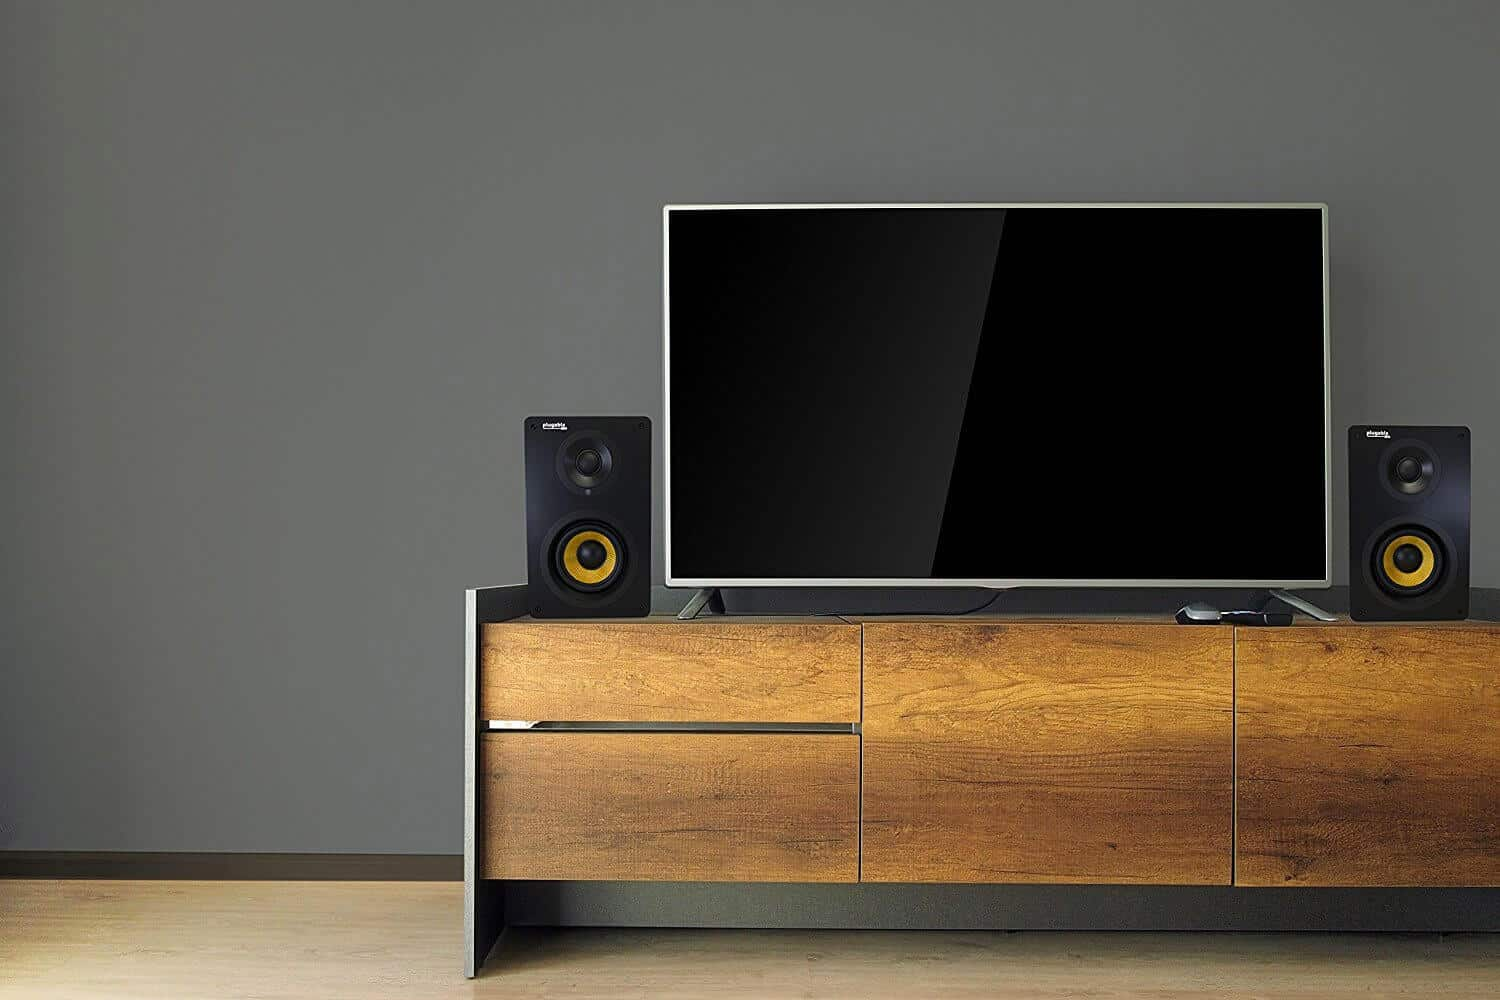 13 Best Powered Speakers That Can Fill A Room [2020]